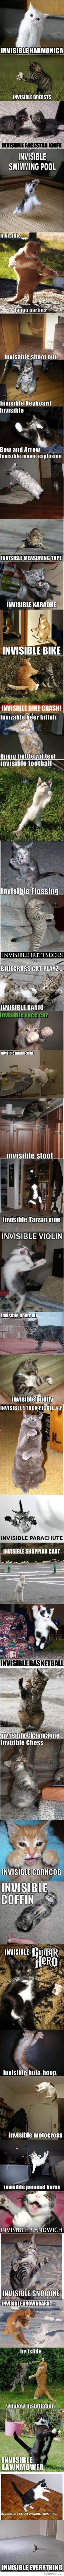 Best of Invisible Cat series. Now that I have a cat I think they're so much funnier!